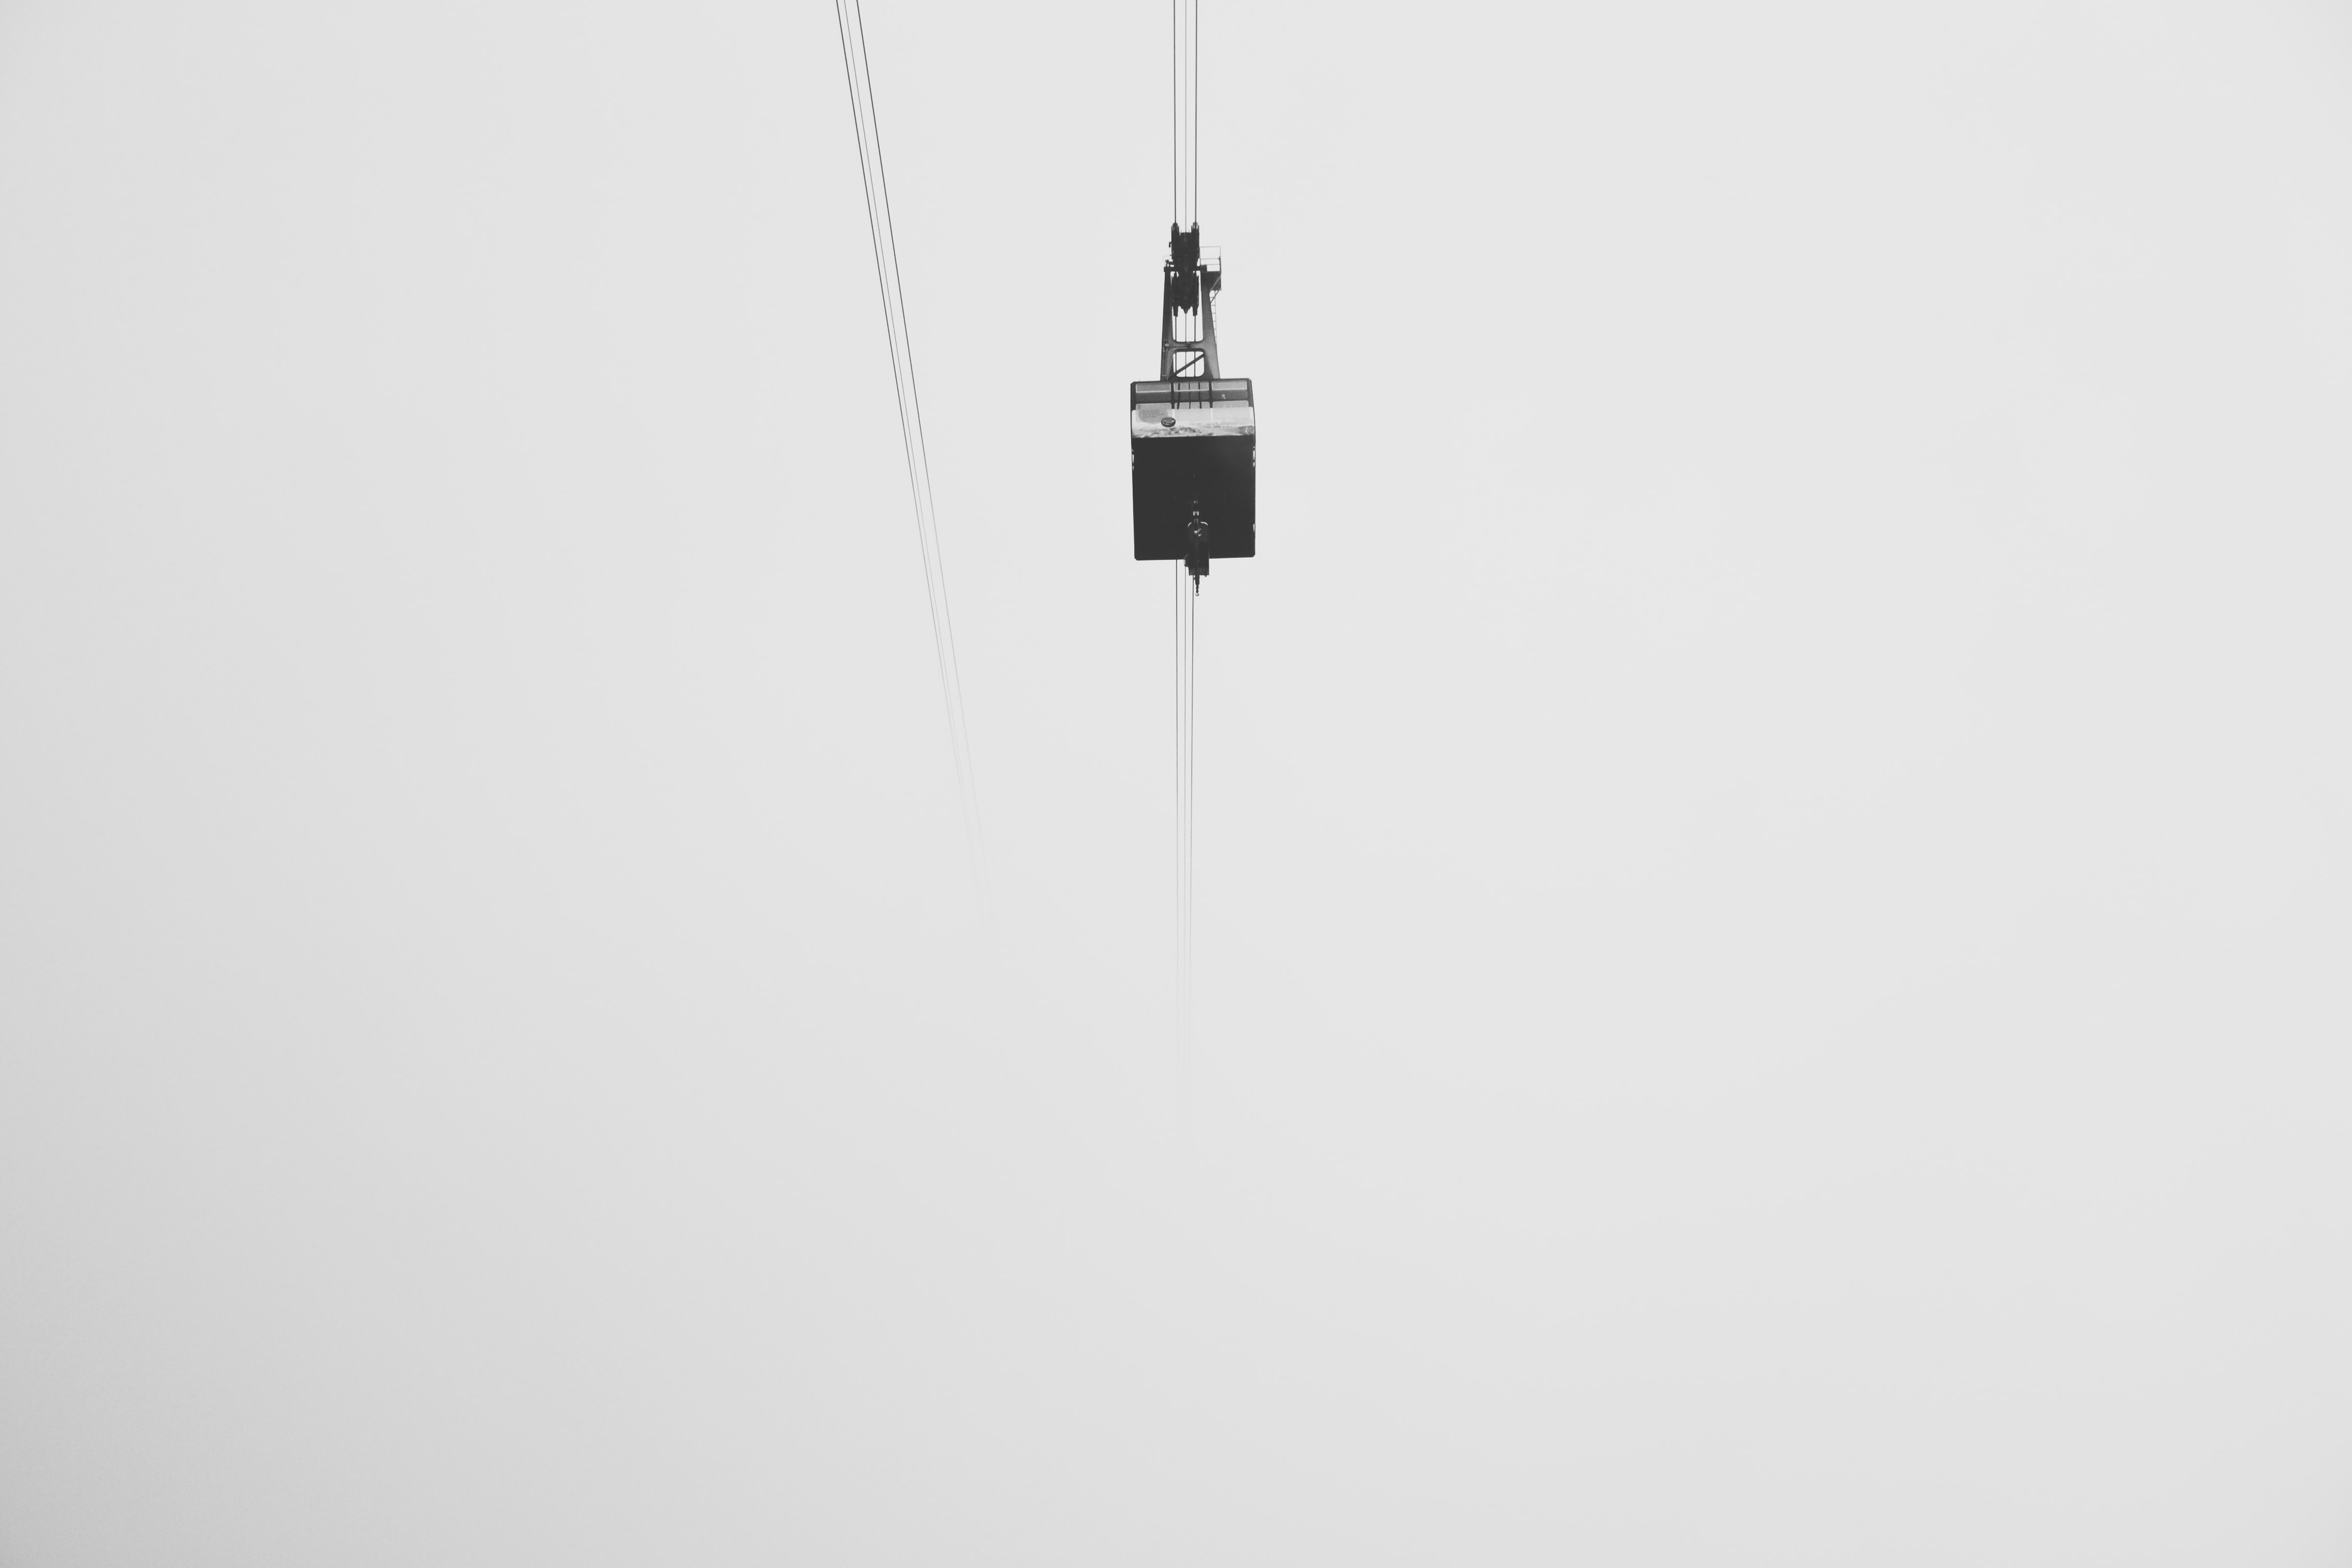 low-angle photography of cable car under gray skies